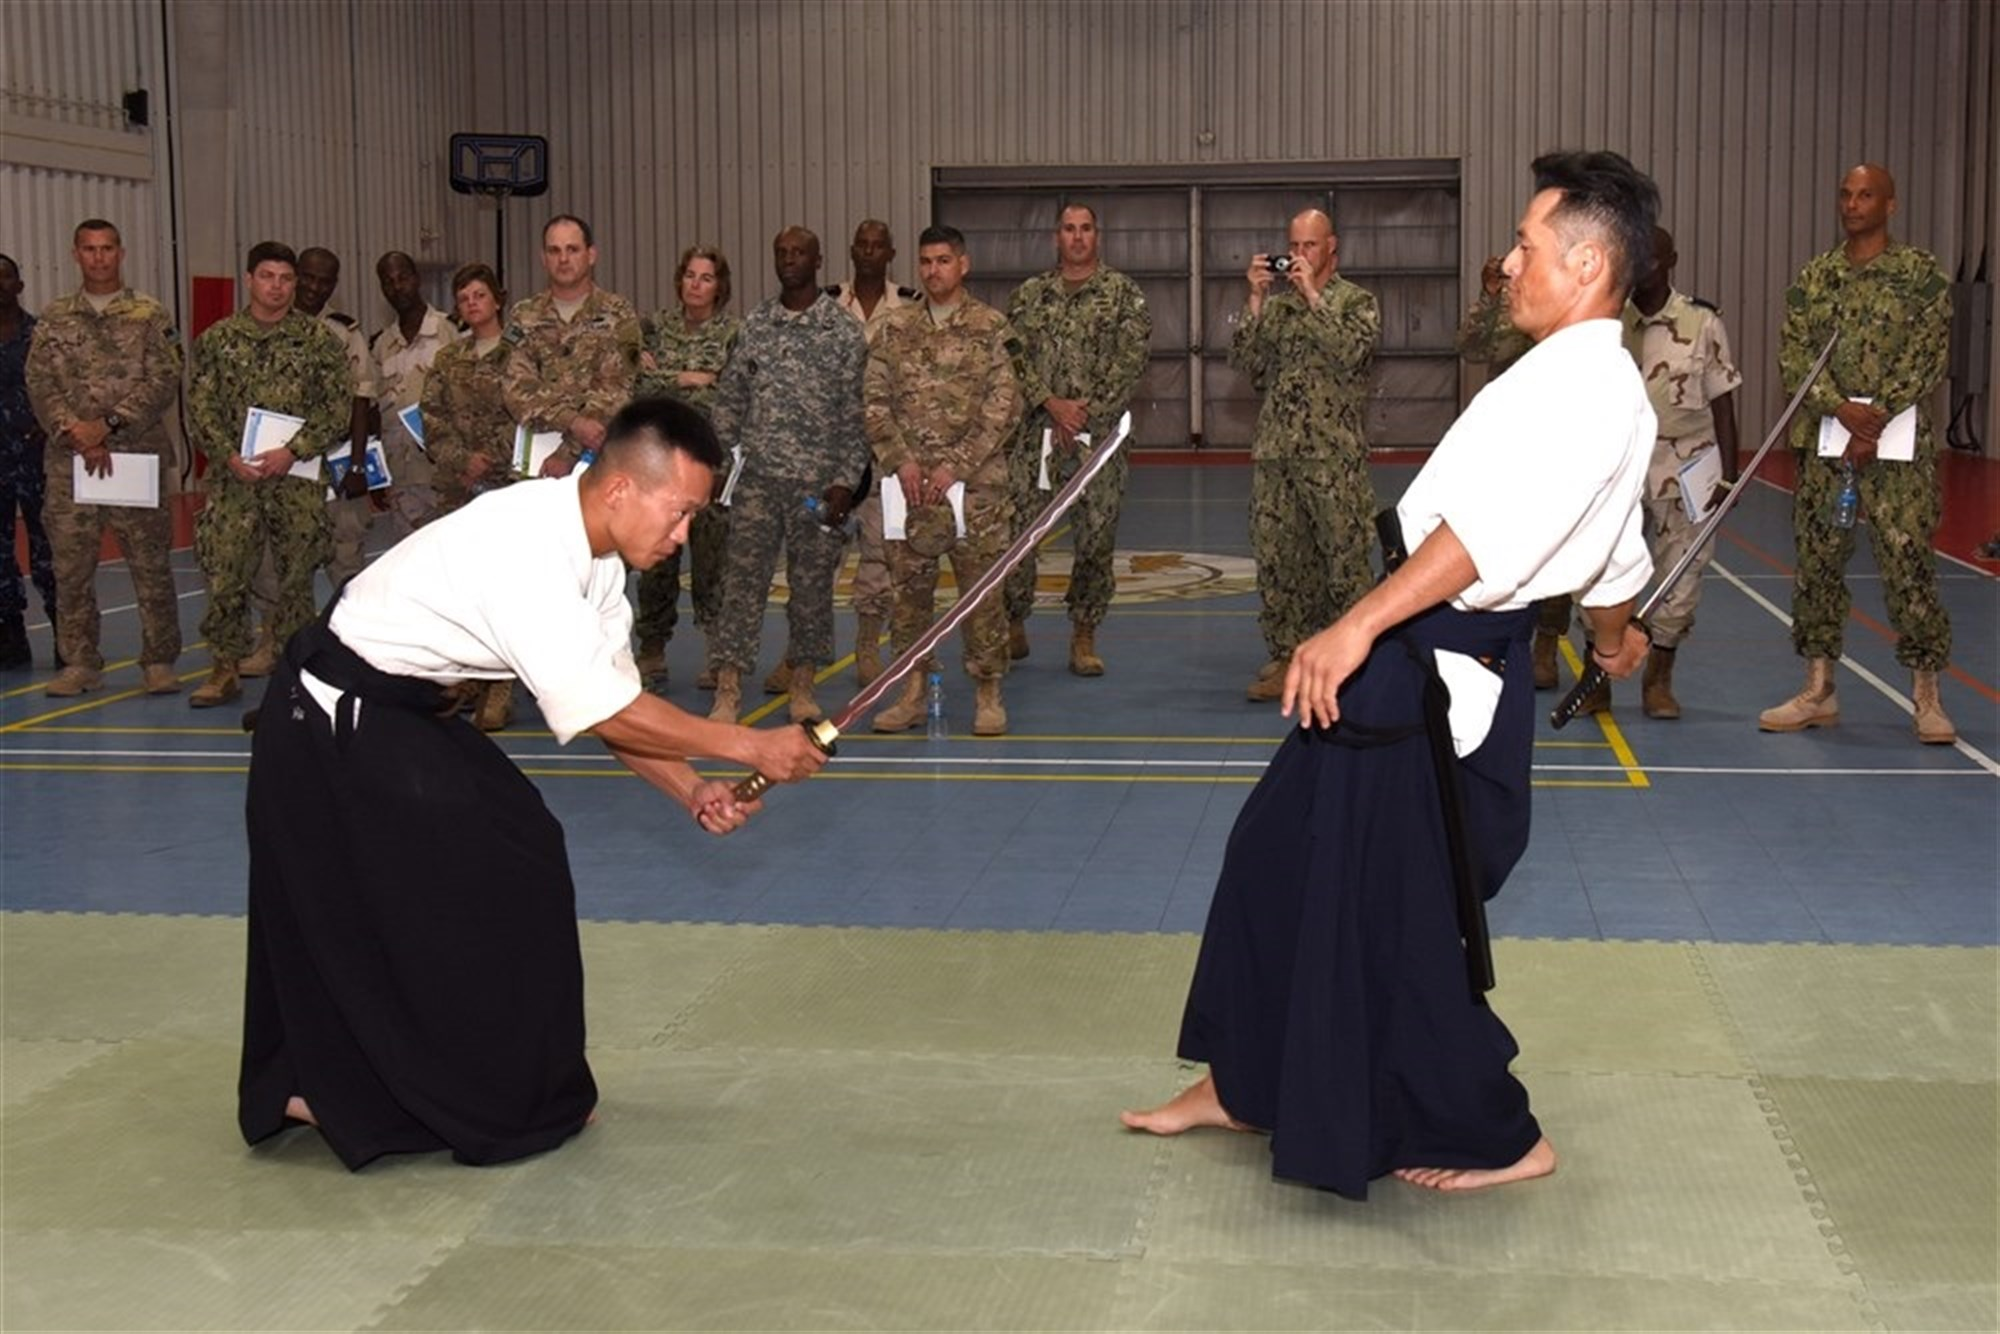 Participants from the Joint Forces Senior Enlisted Professional Development Course view a traditional swordsmanship demonstration at the Japanese base in Djibouti, Nov. 24, 2015. The Japan Self-Defense Forces hosted the second gathering of senior enlisted members to share their culture and mission. (U.S. Air Force photo by Staff Sgt. Victoria Sneed)